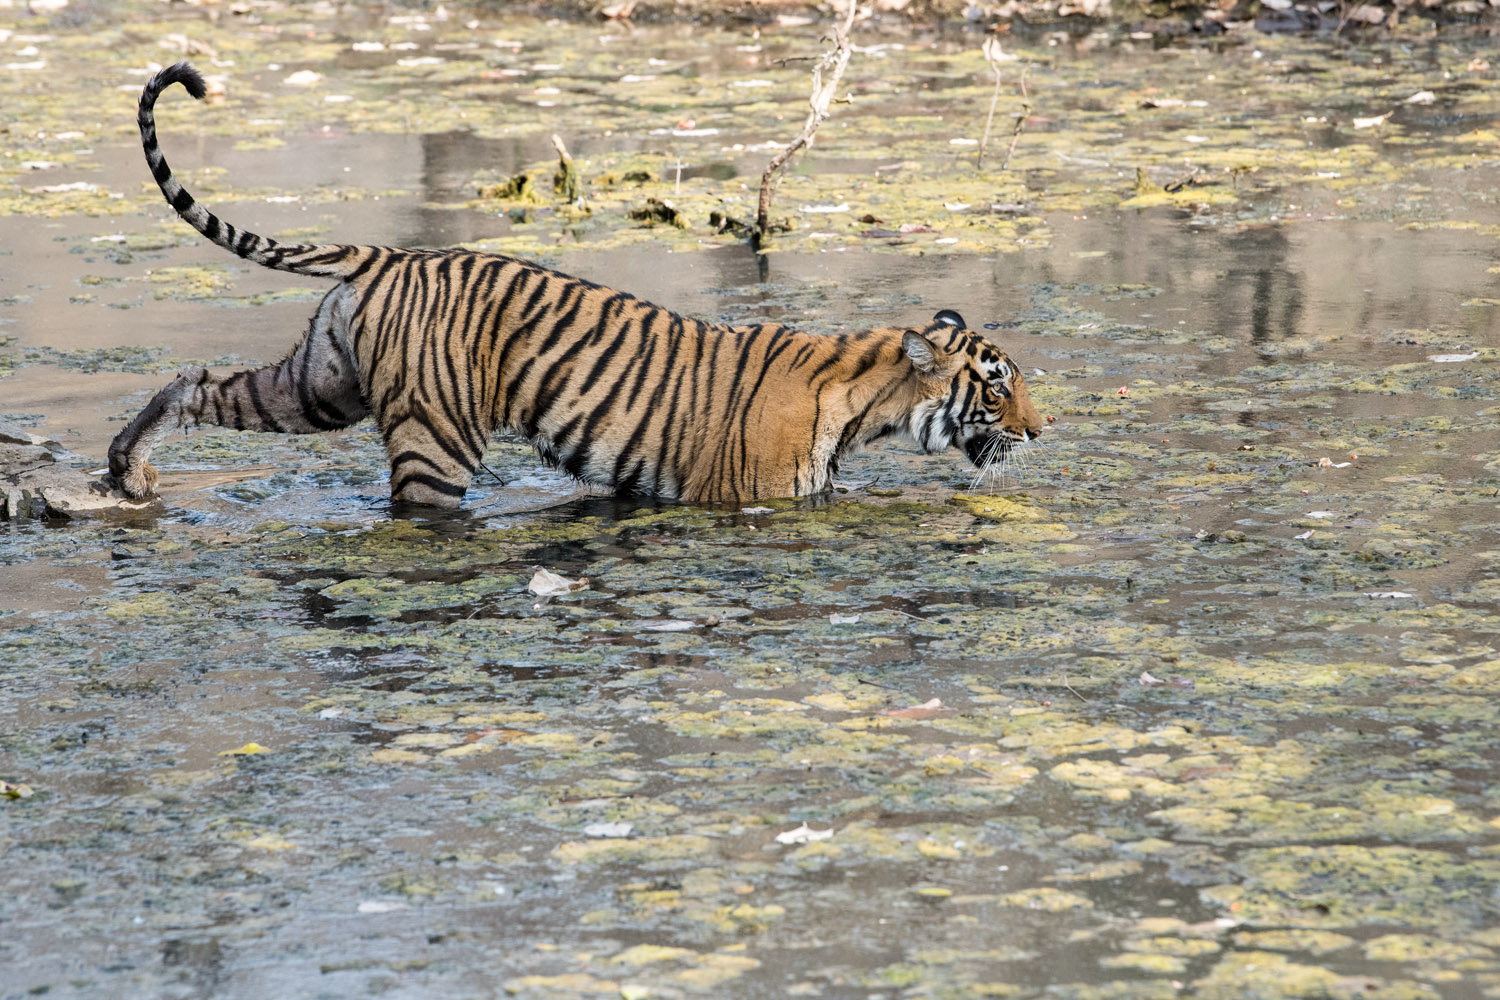 Bengal tigress crossing stream, Ranthambhore National Park, Rajasthan, India